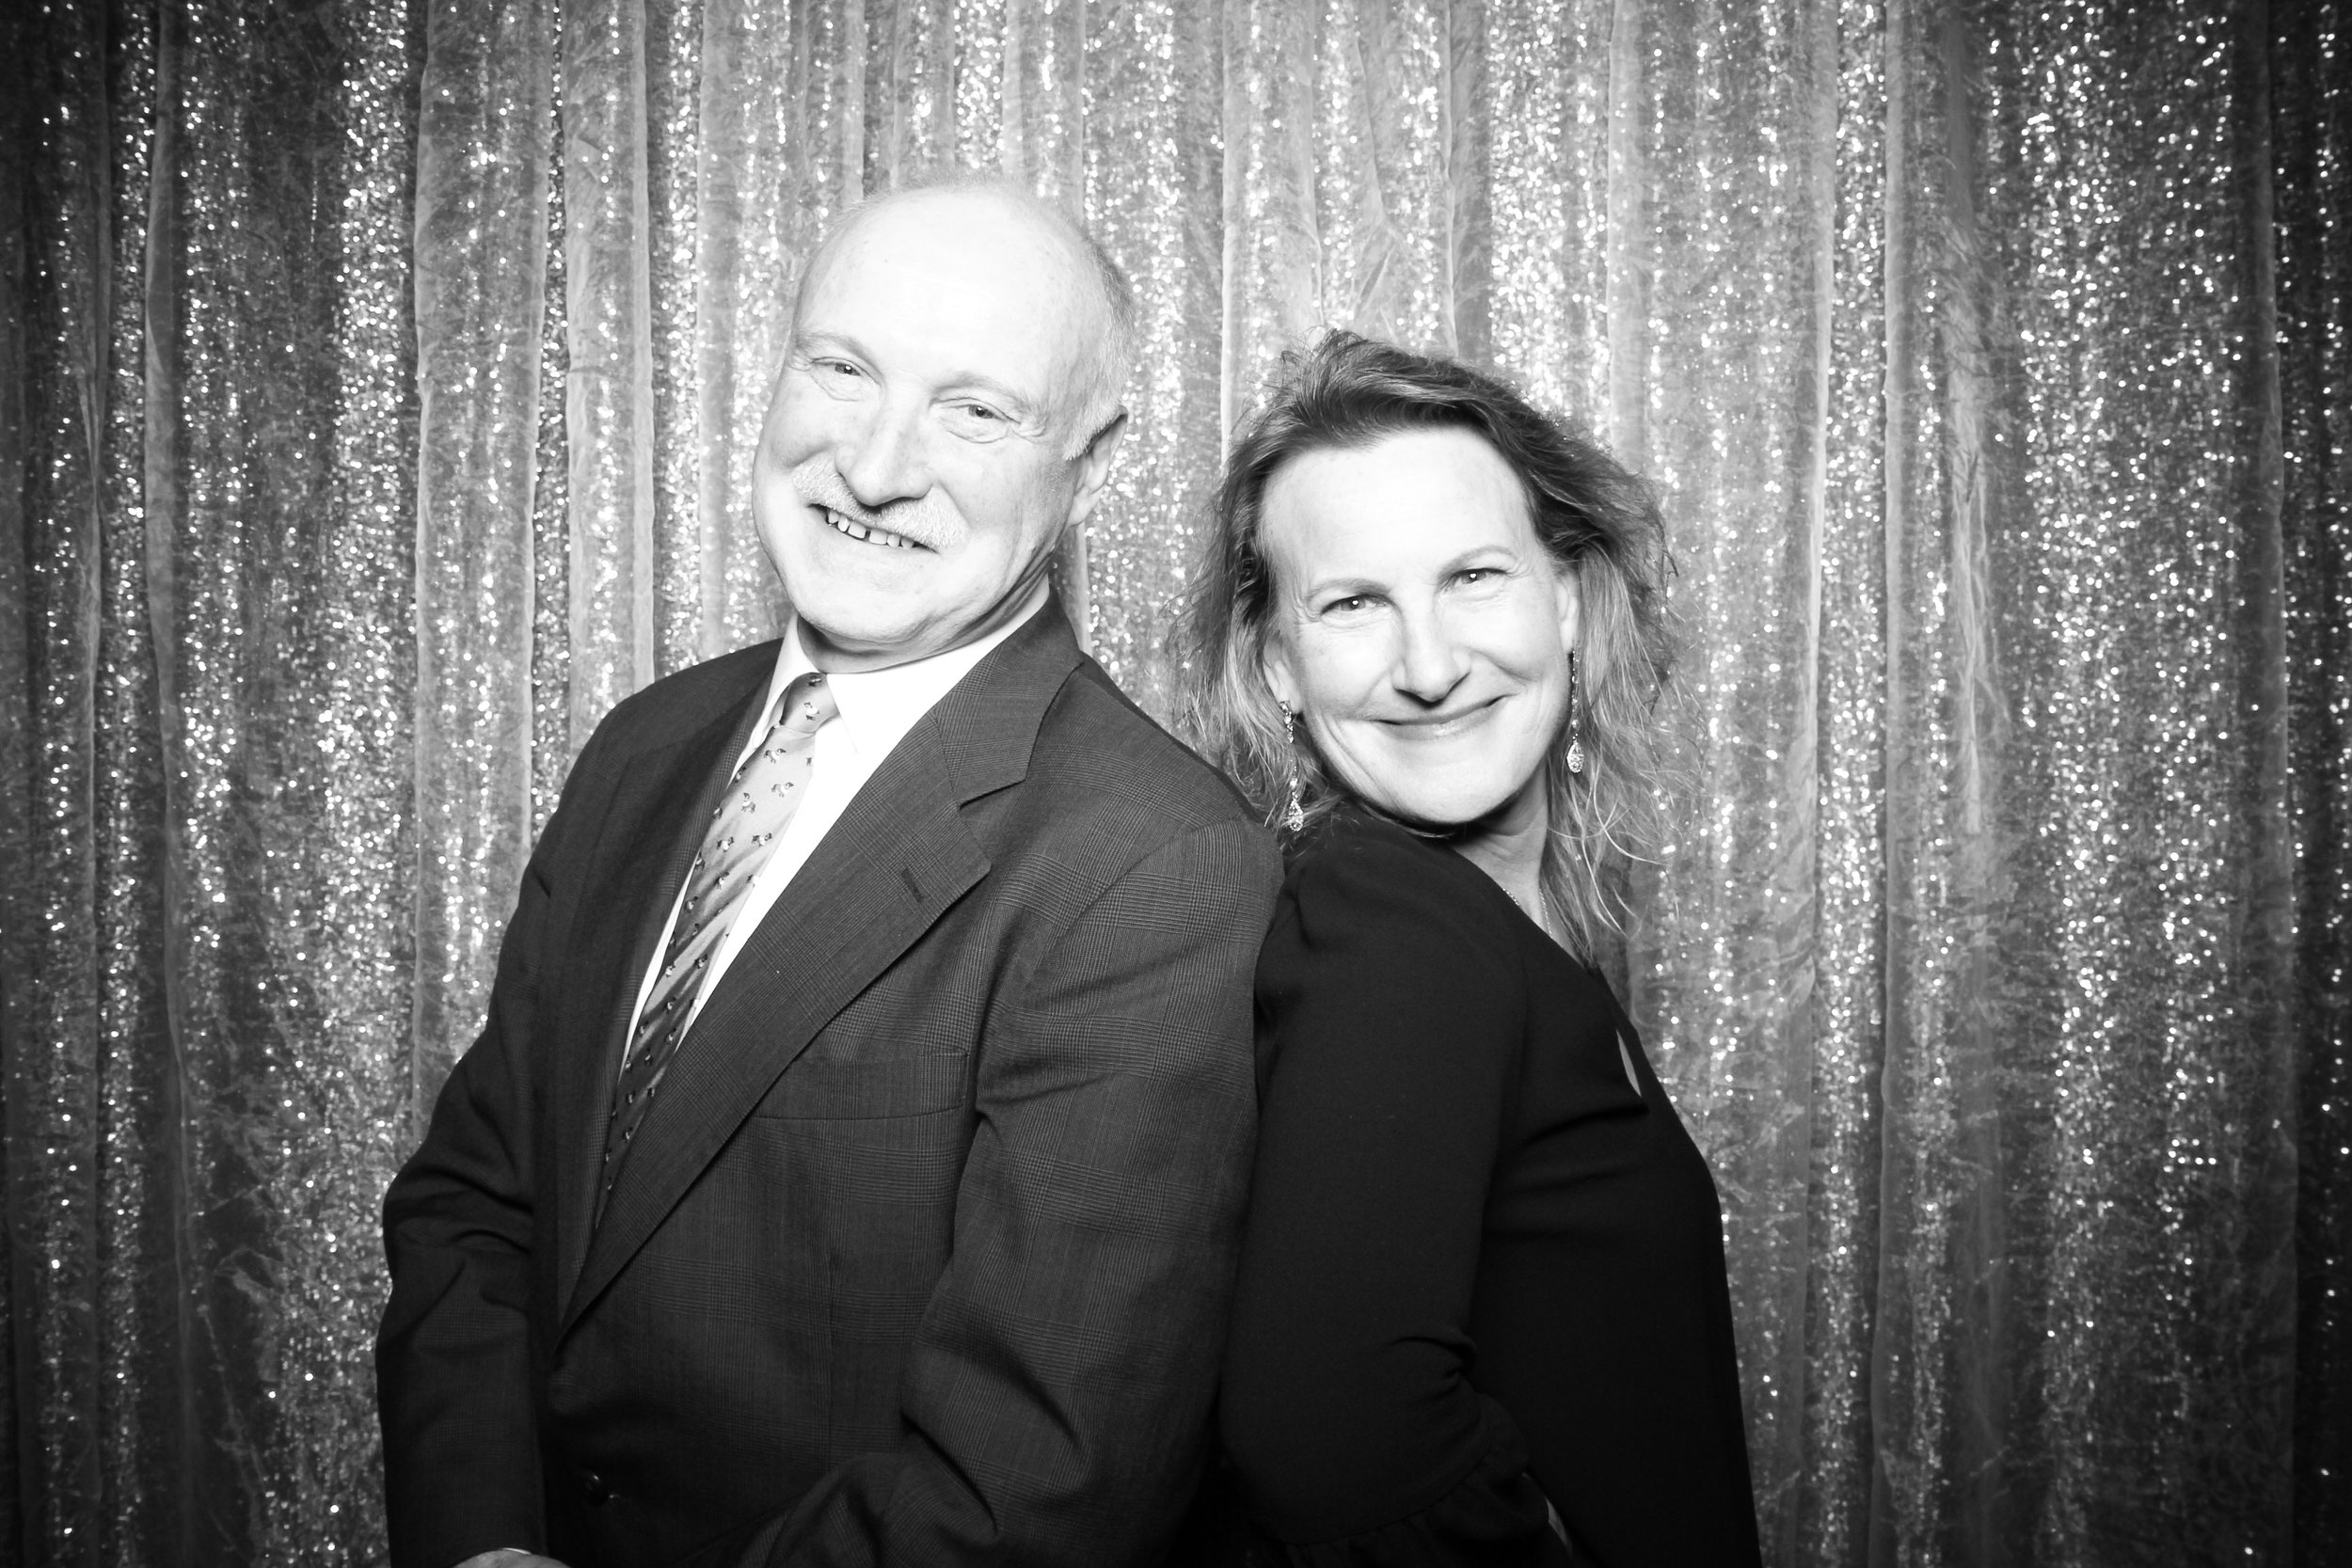 Chicago_Vintage_Photobooth_Montgomery_Club_Holiday_Party_20.jpg